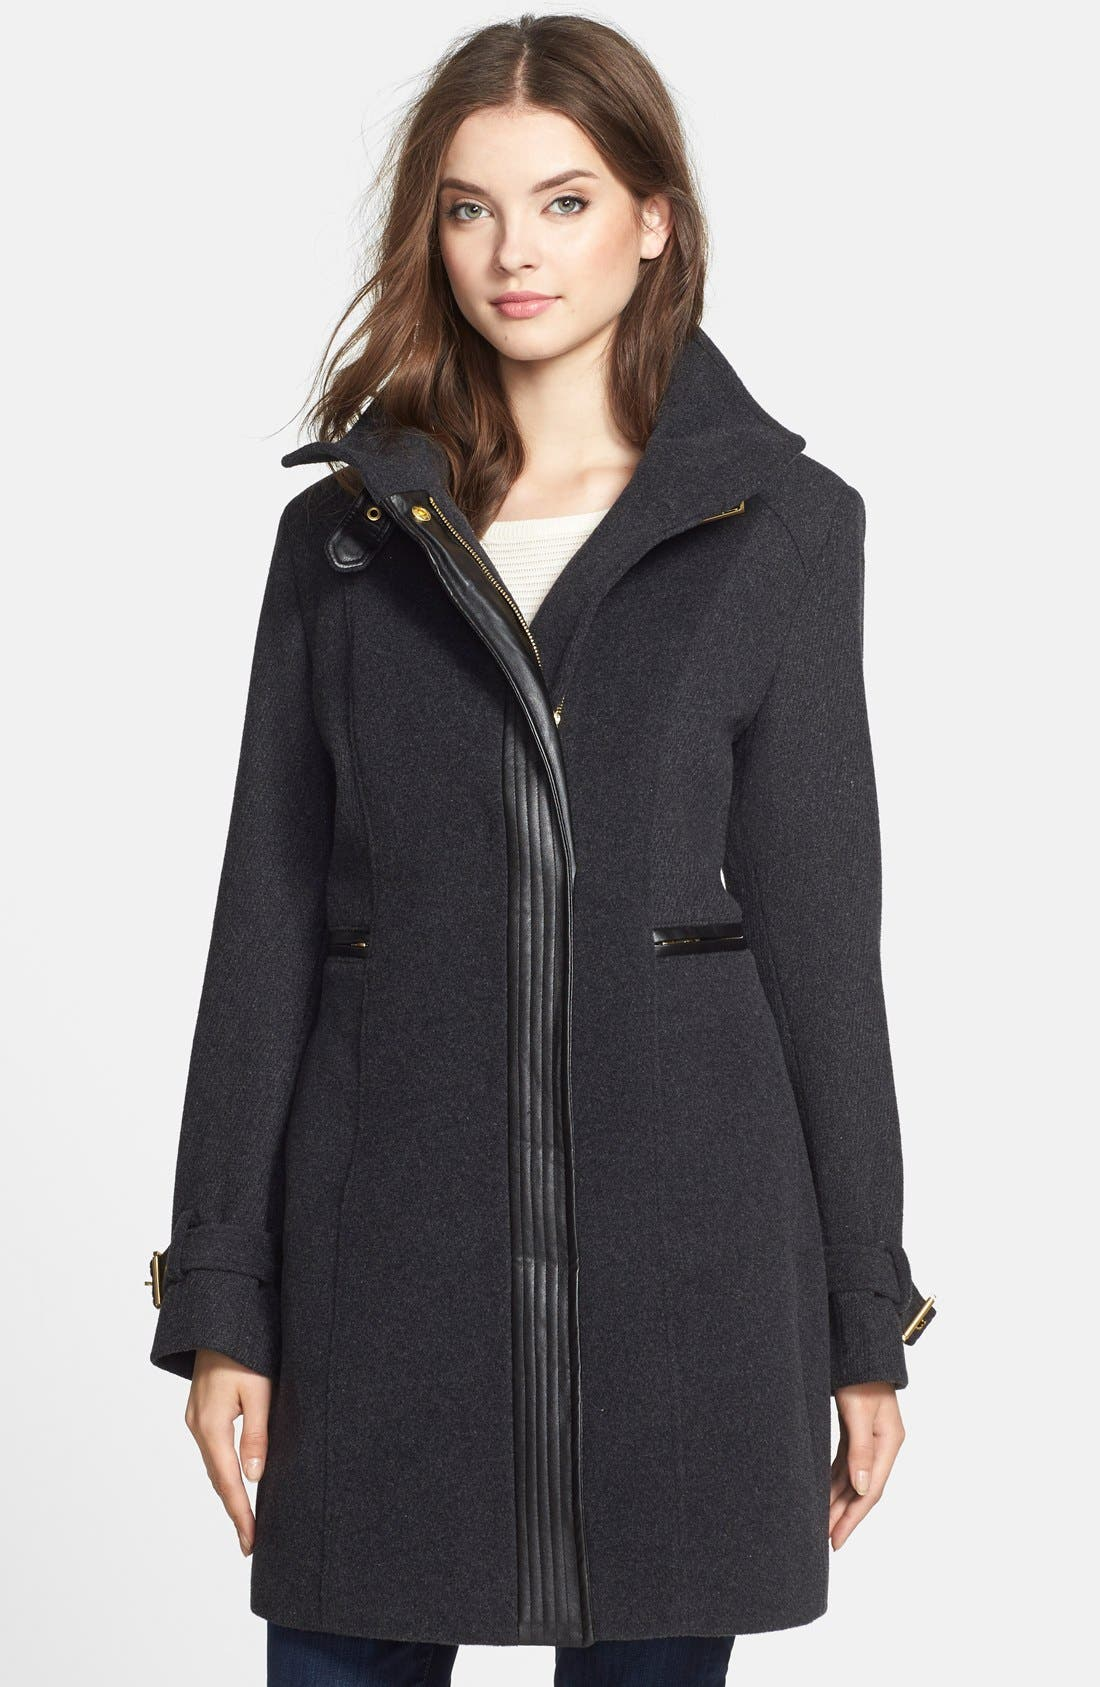 Main Image - Cole Haan Faux Leather Trim Textured Wool Coat